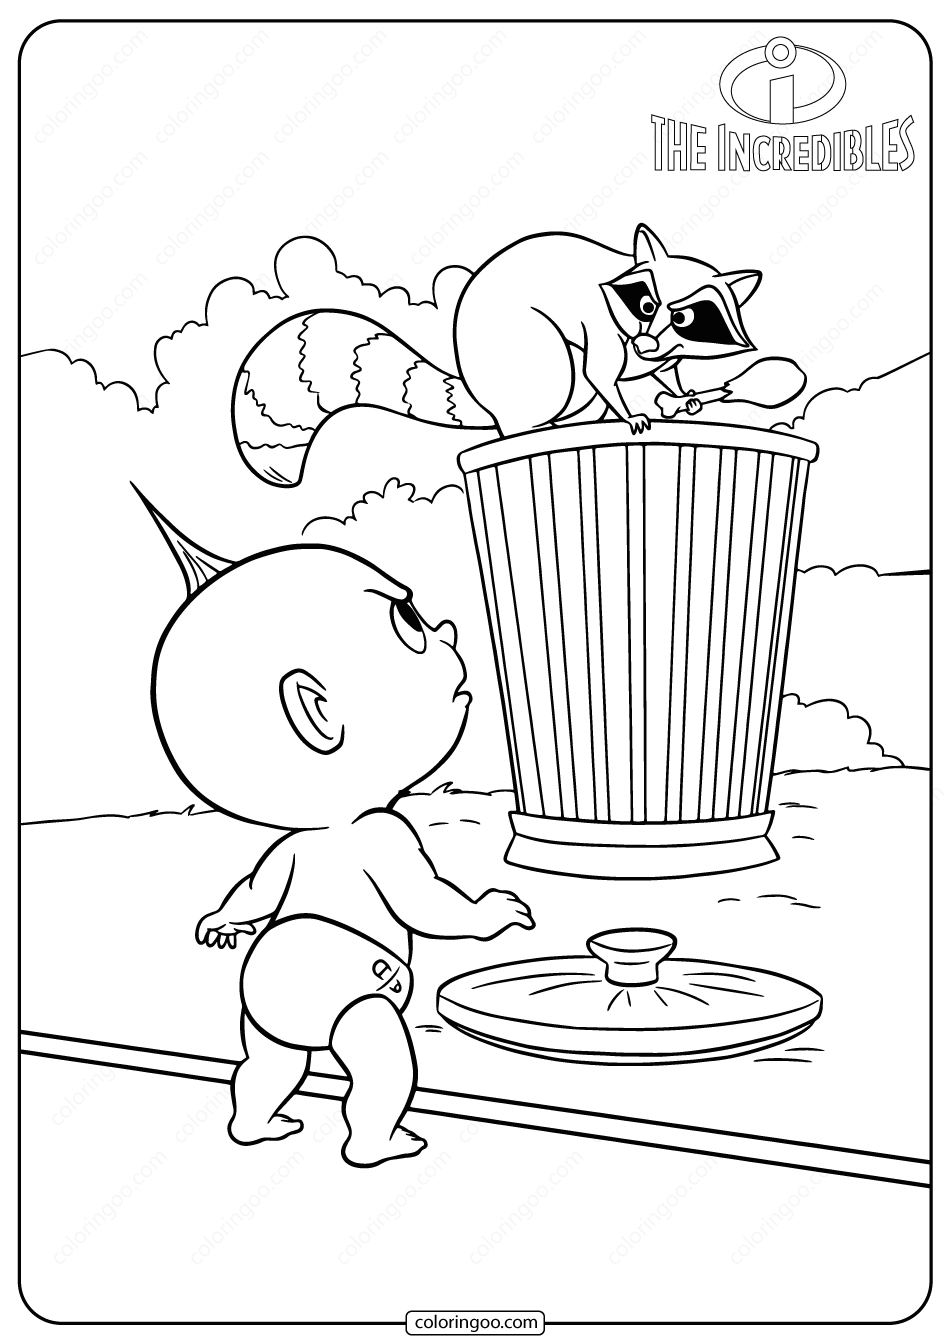 baby jack jack coloring page baby jack jack incredibles coloring pages the parr family coloring jack page baby jack